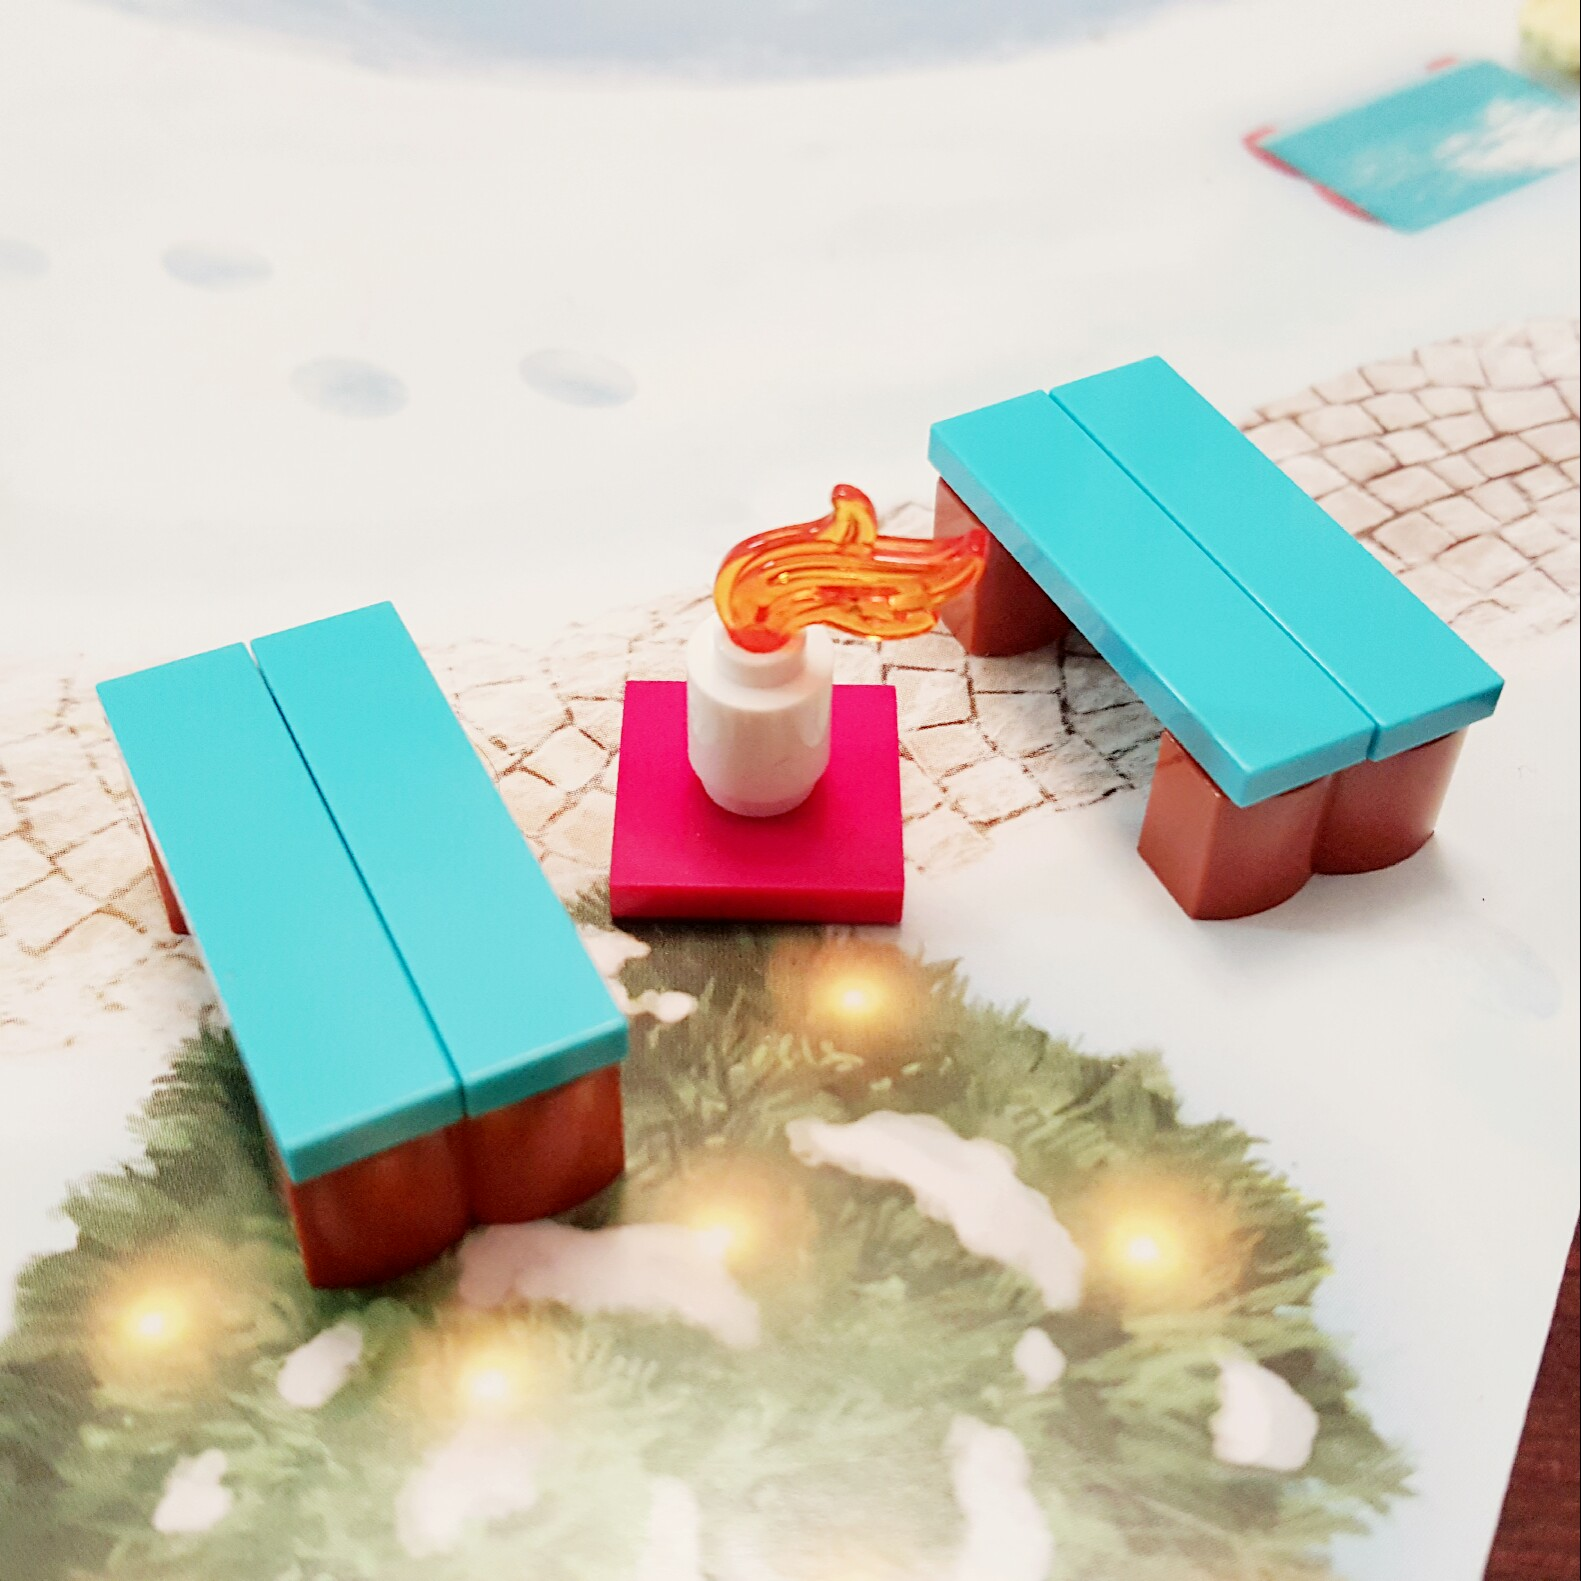 Day 17 Benches and Fire Pit from LEGO Friends Advent Calendar